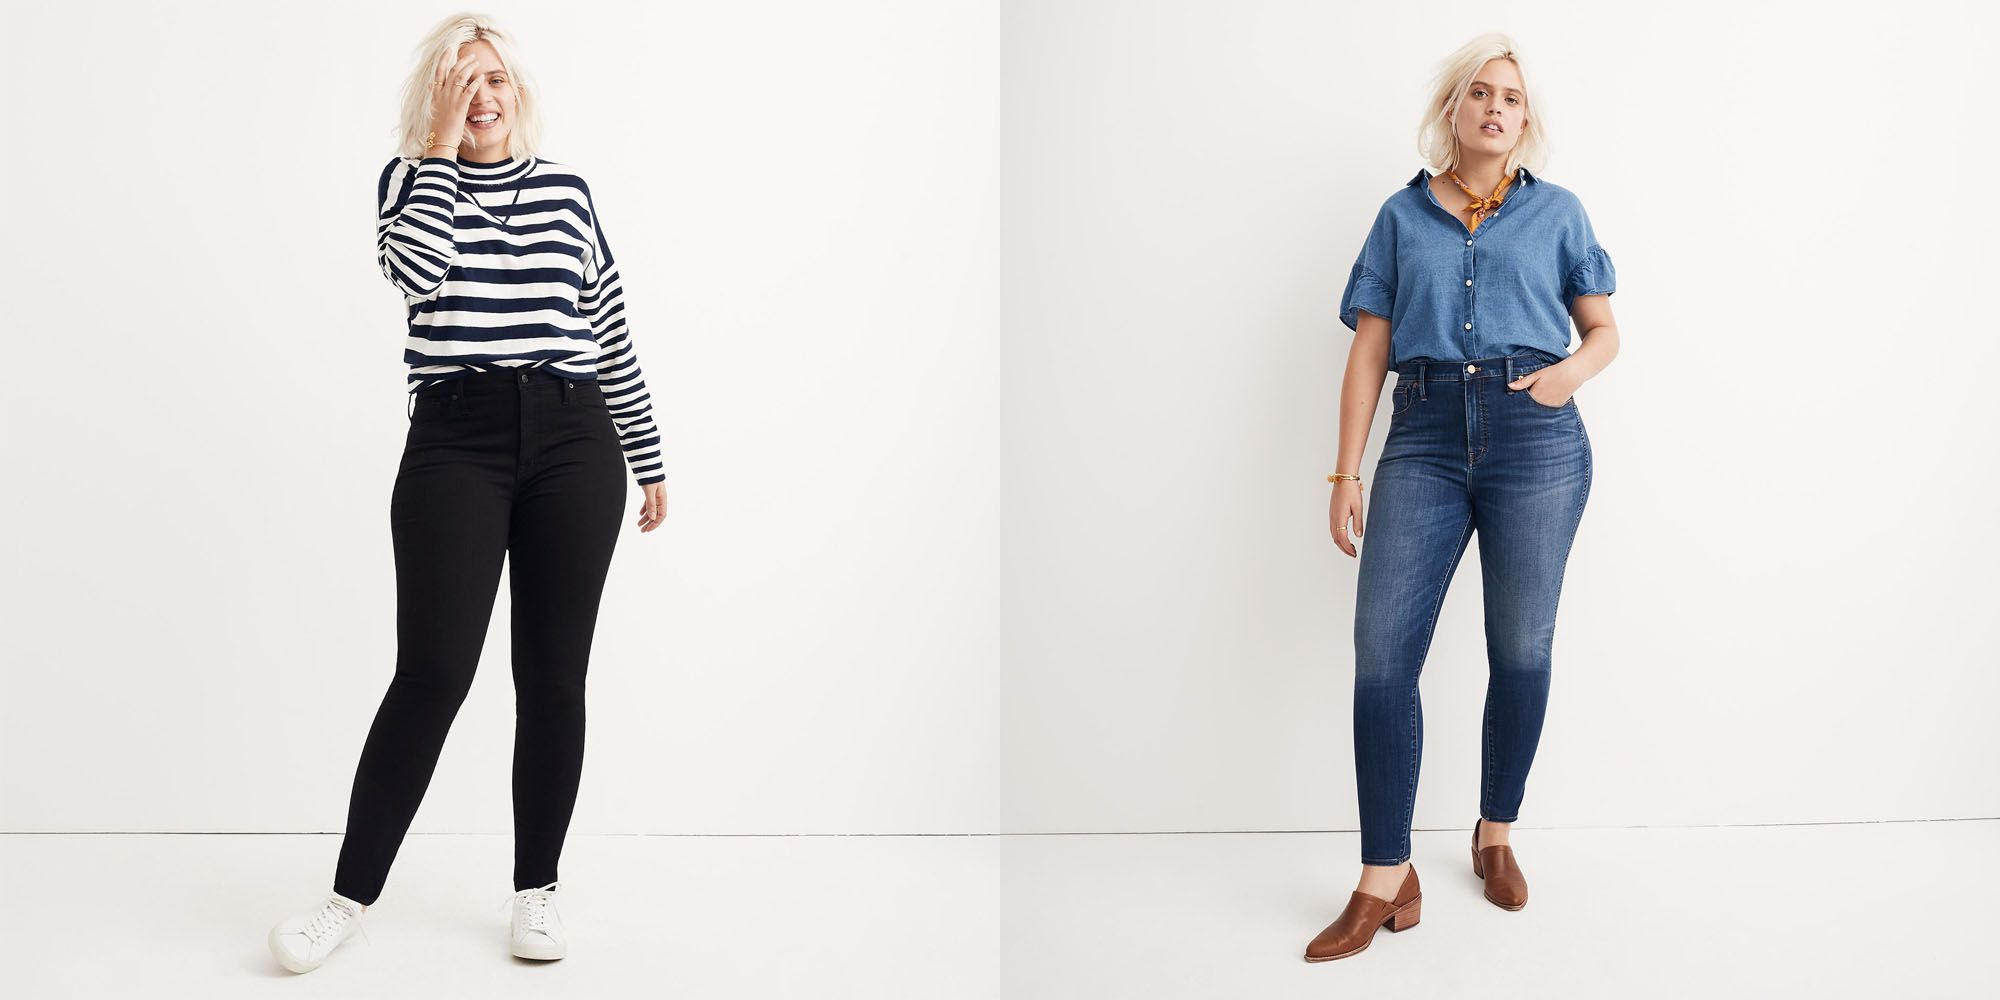 To acquire Madewell the Newsannouncing denim tour picture trends